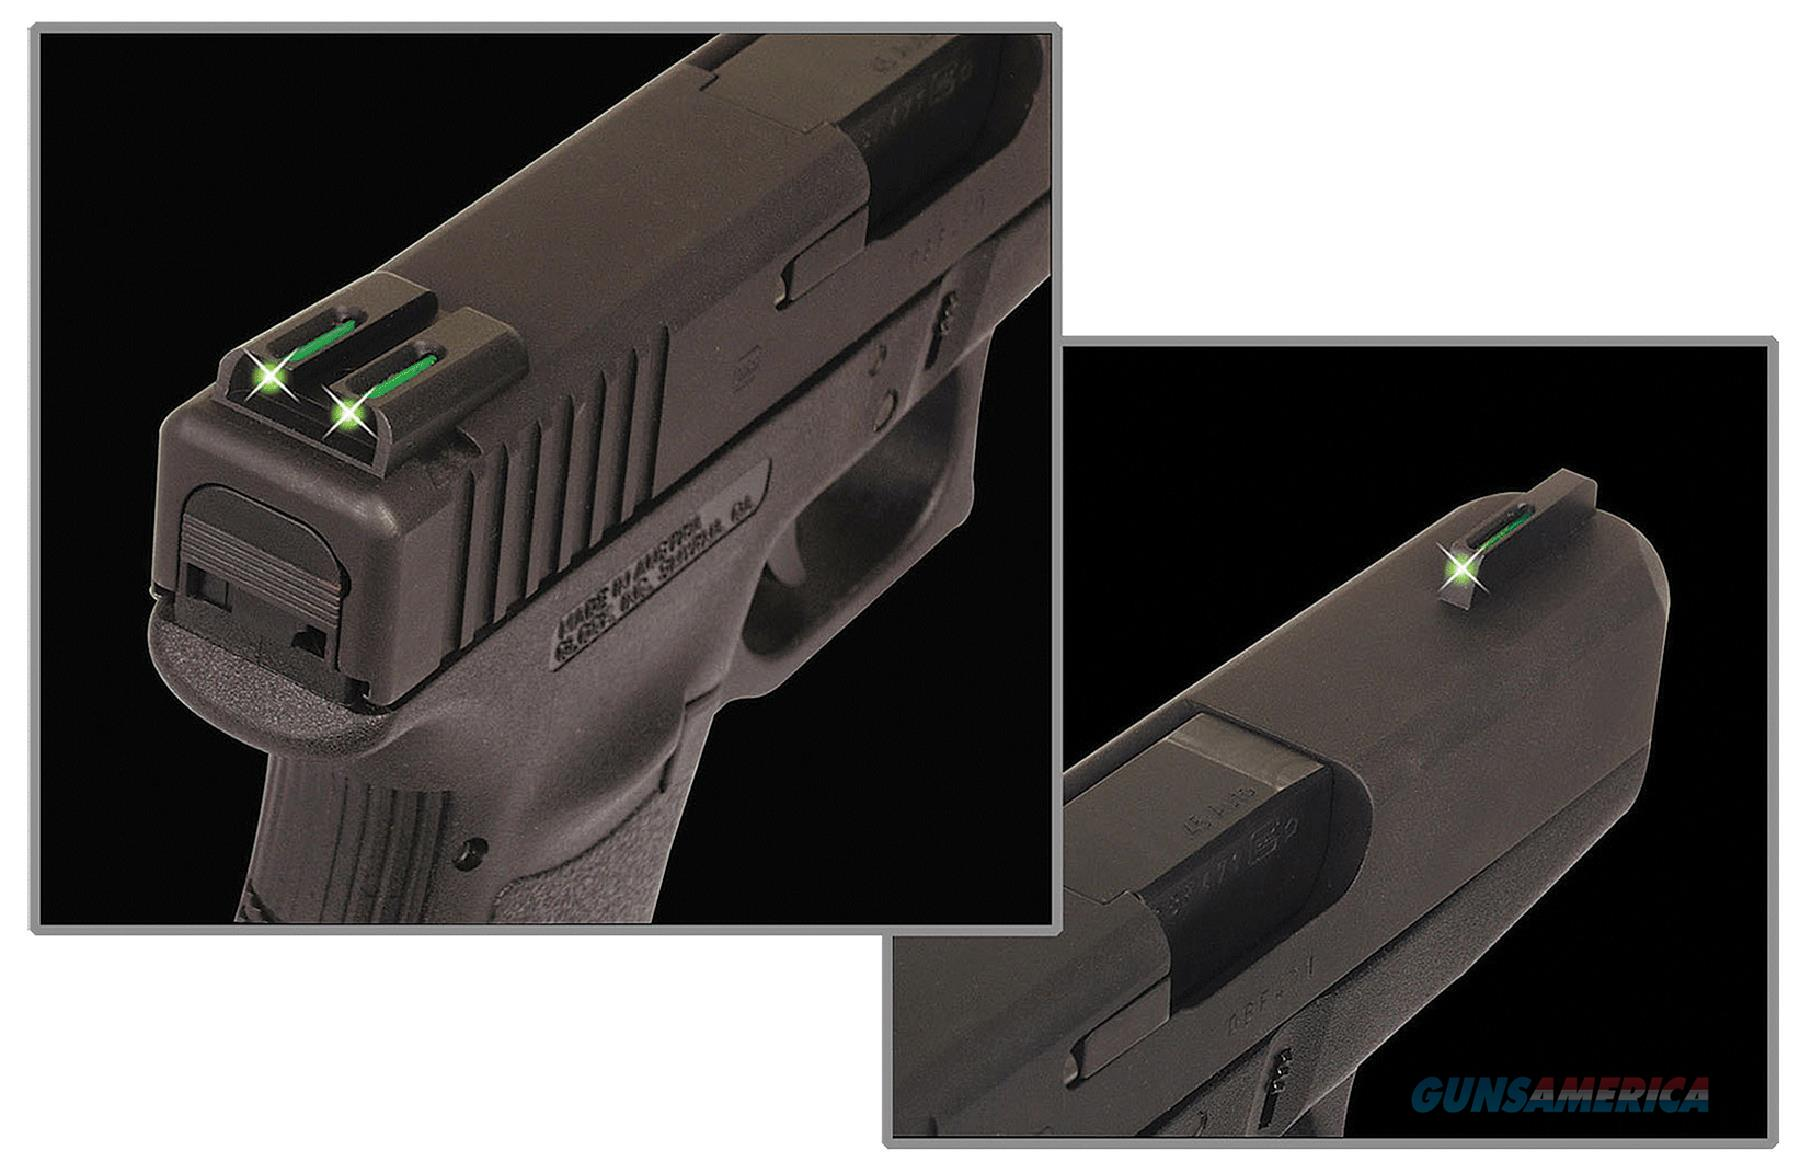 Truglo Tg131st2y Brite-Site Tfo Sig Sauer Tritium/Fiber Optic Green Front Yellow Rear Black TG131ST2Y  Non-Guns > Iron/Metal/Peep Sights